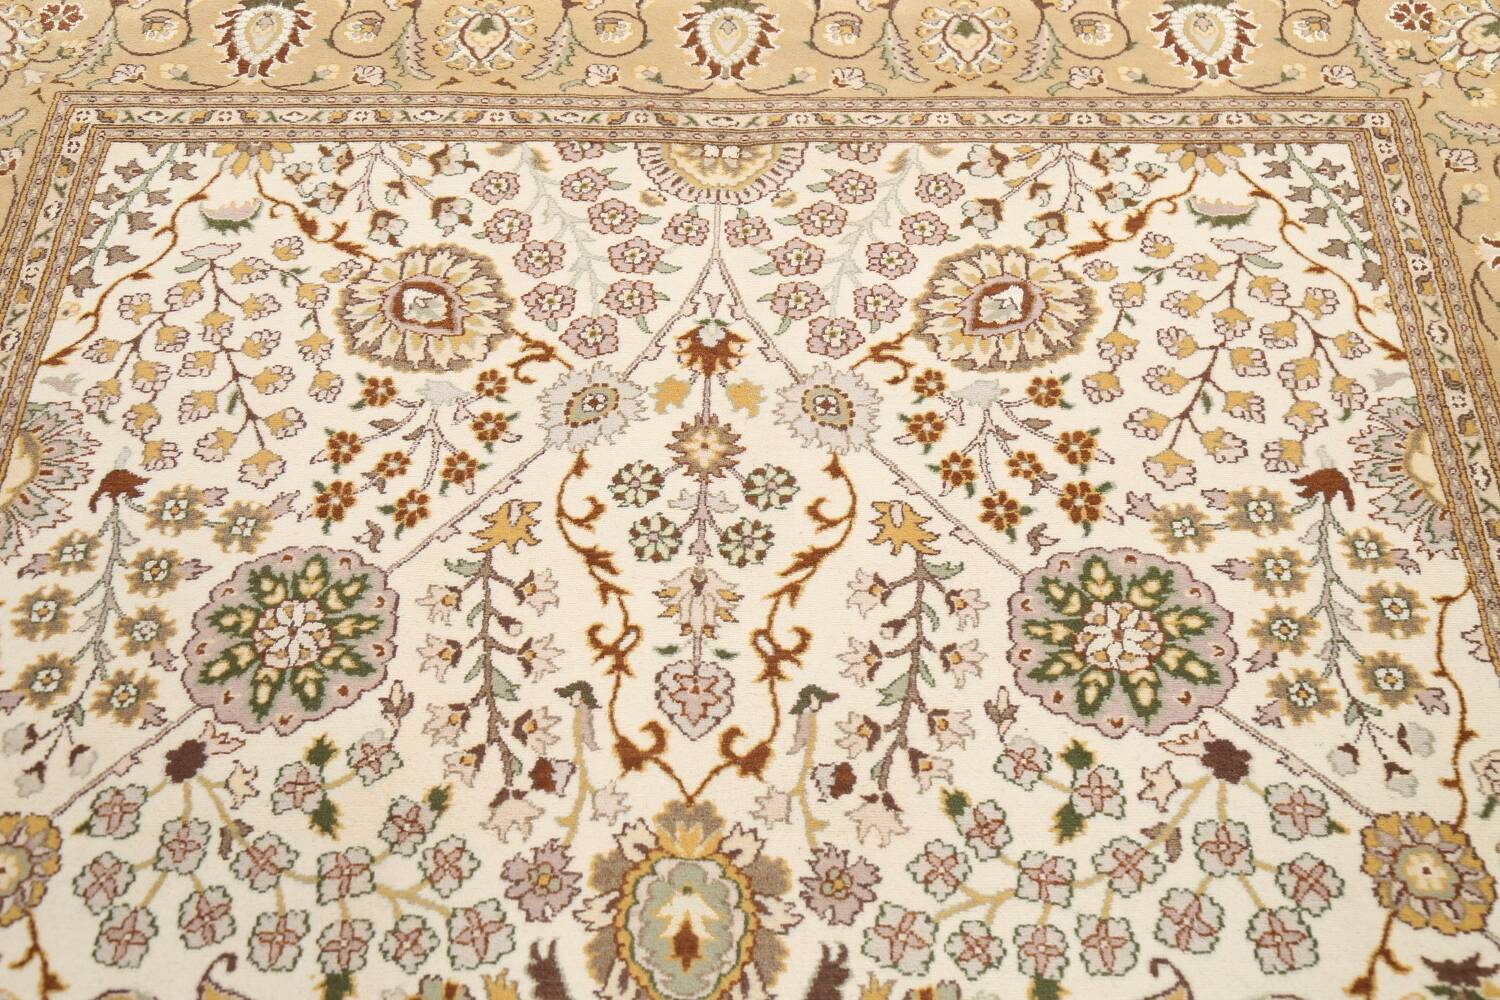 Vegetable Dye Floral Tabriz Oriental Area Rug 6x9 image 10